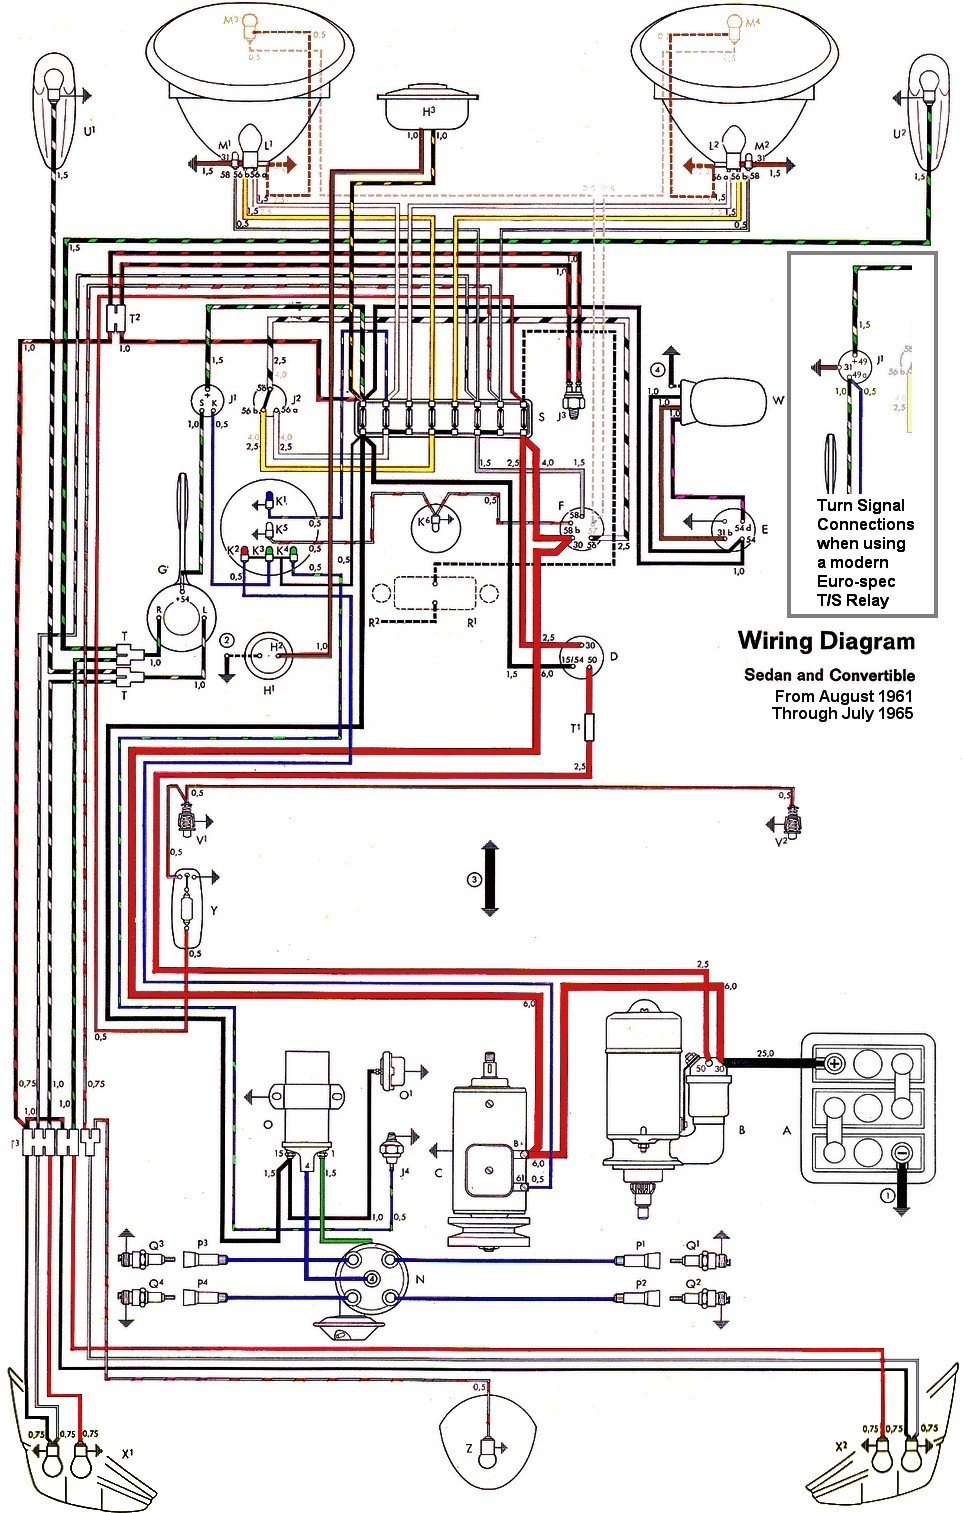 bug_62 65withinset thesamba com type 1 wiring diagrams 1965 vw beetle wiring diagram at edmiracle.co